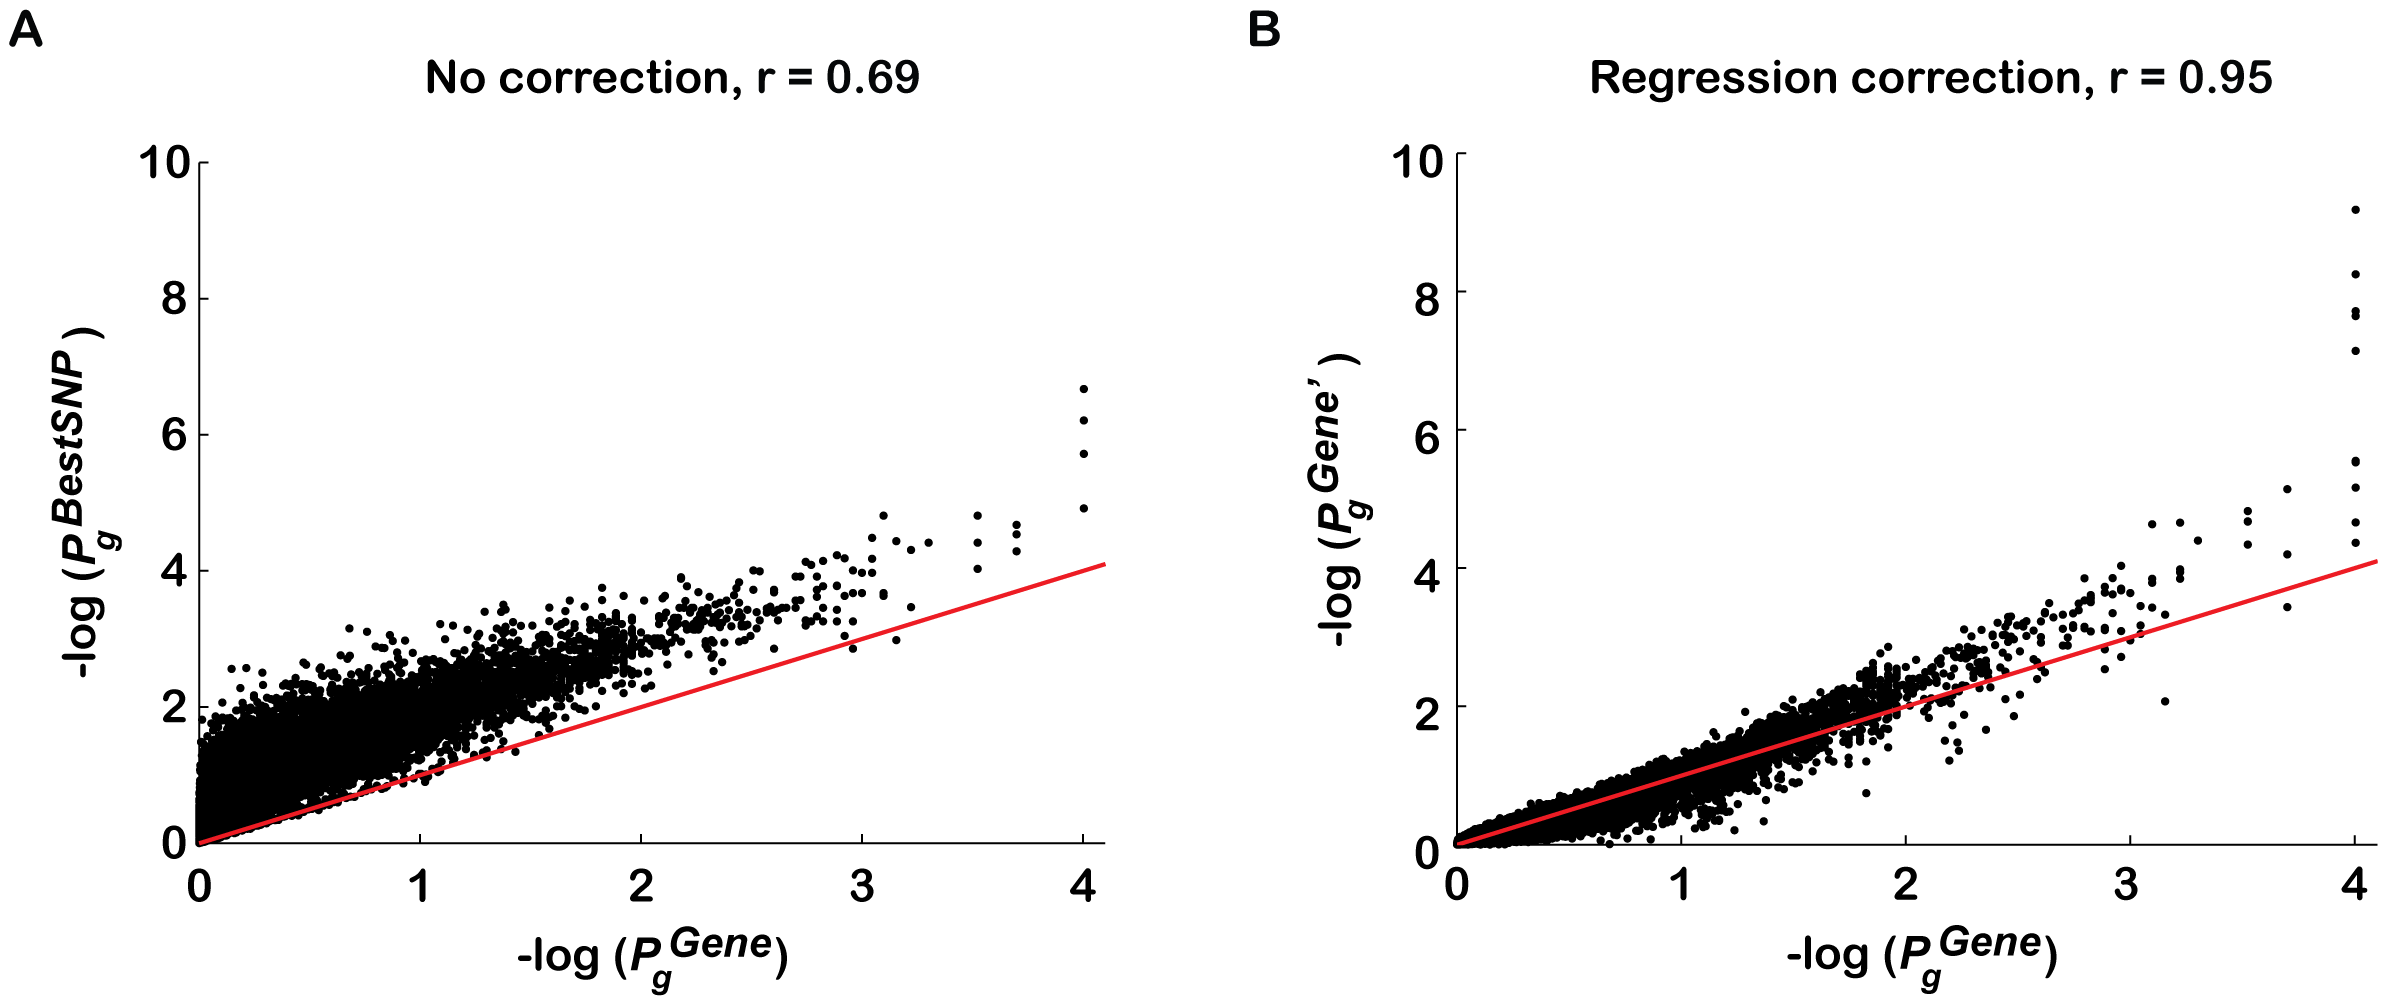 Regression analysis corrects for majority of confounding effects on gene association scores in a genotype-independent manner.